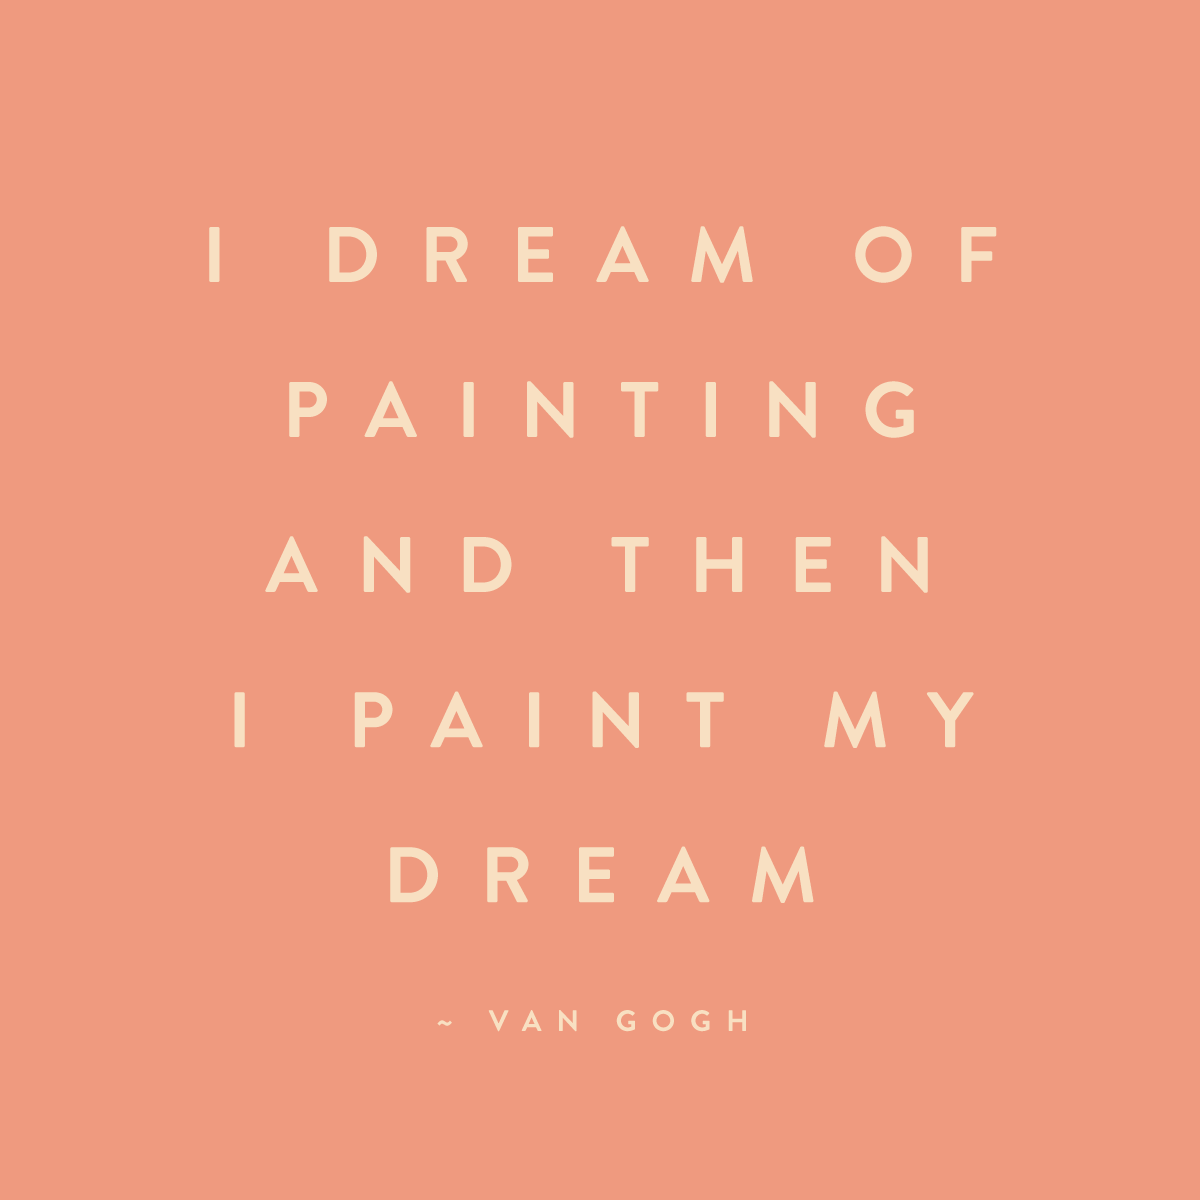 nole creative van gogh quote i dream of painting and then paint my dream